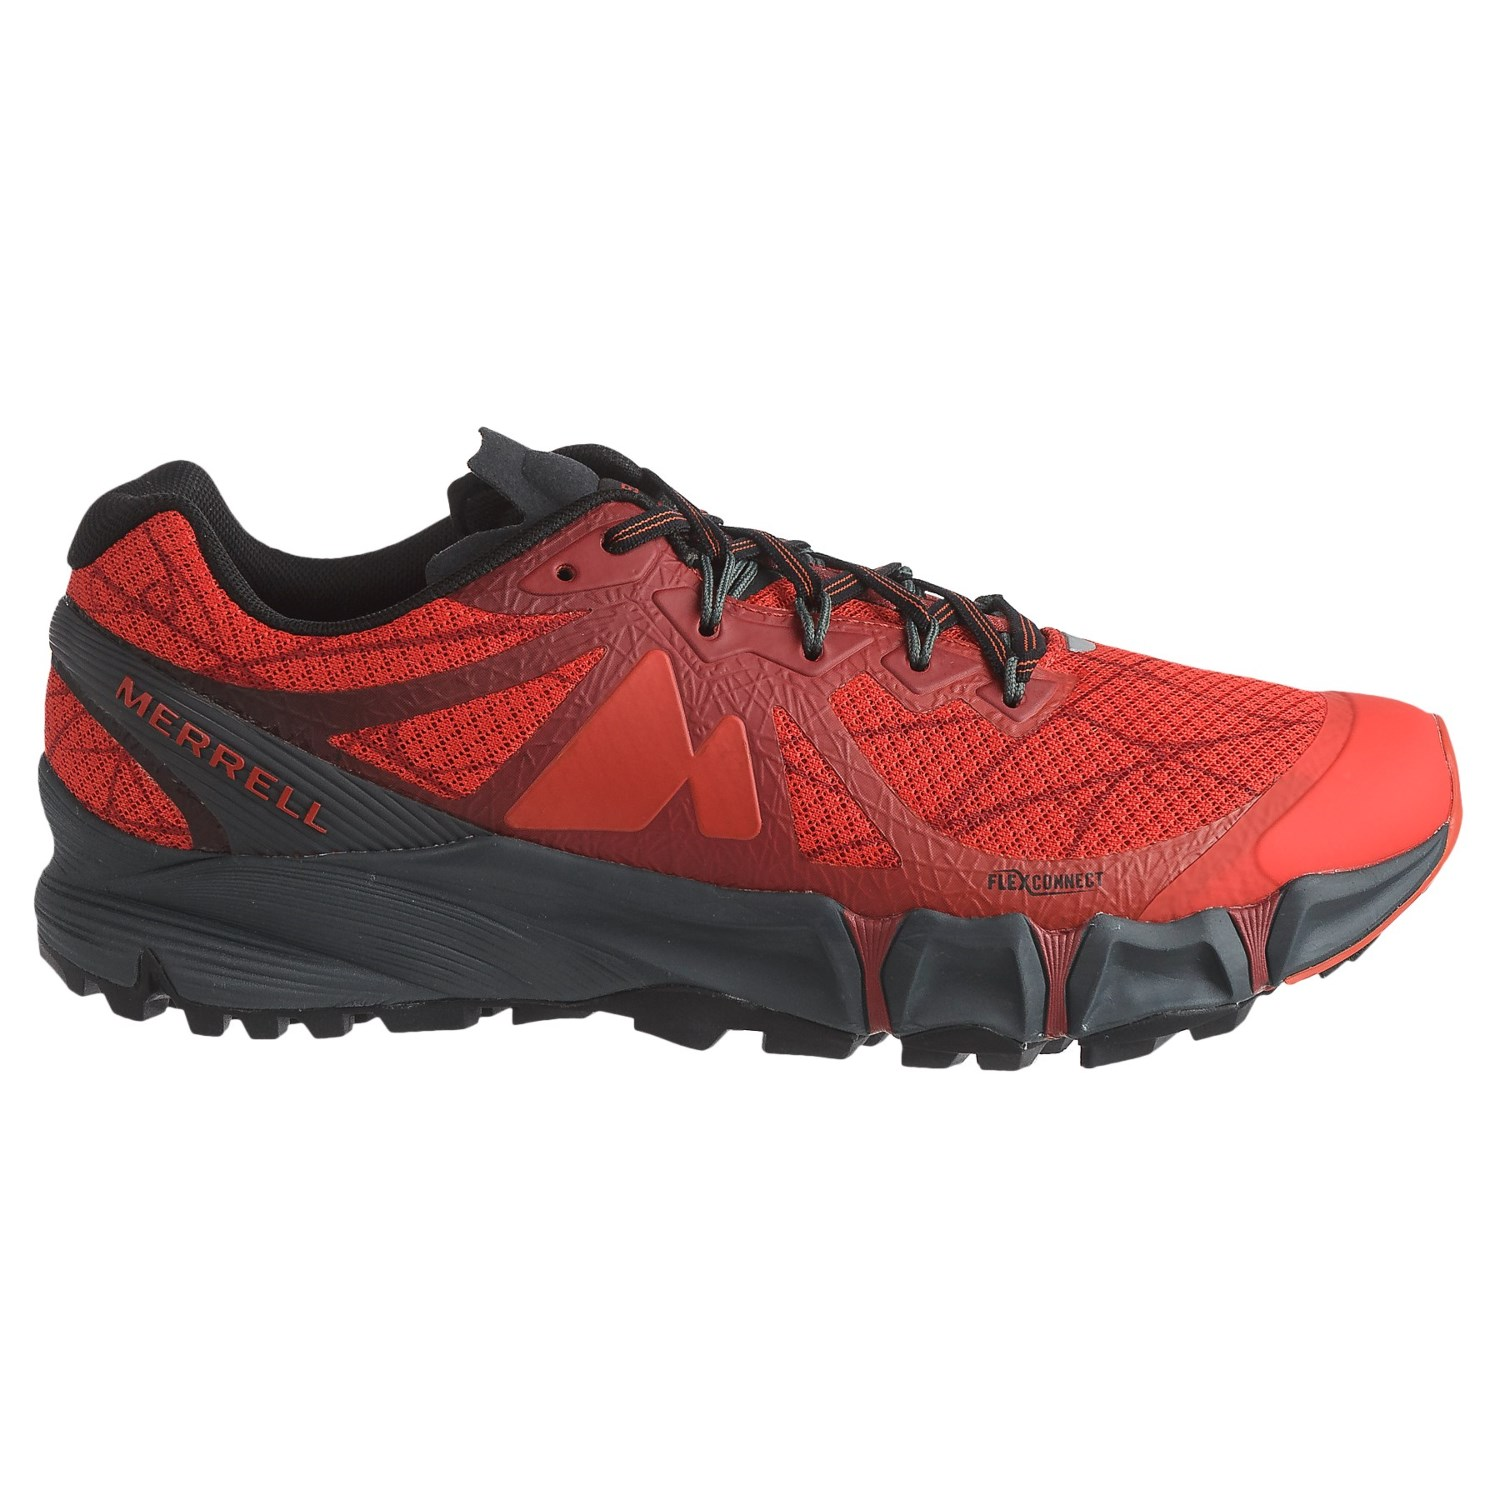 Mens Merrell Trainers - High Risk Red LN68181